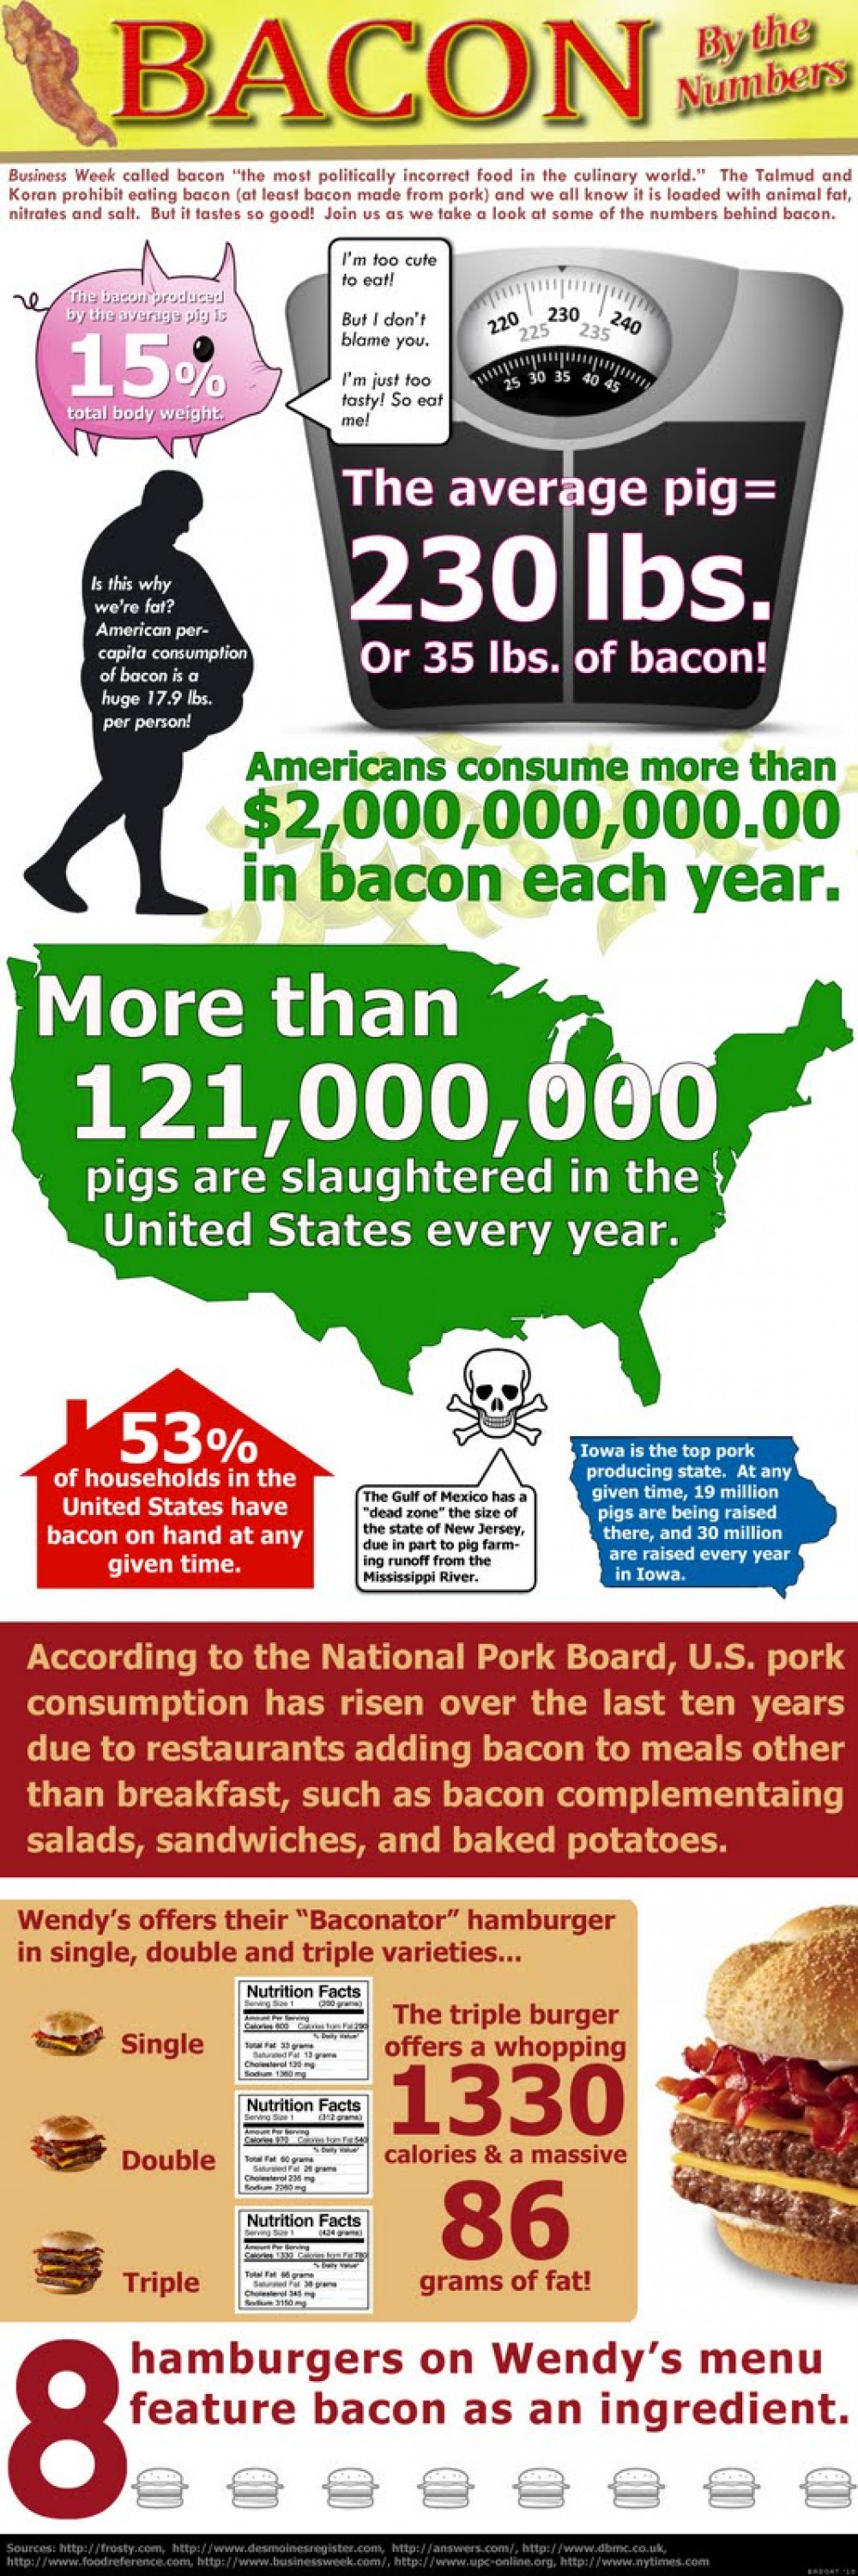 Bacon by the Numbers